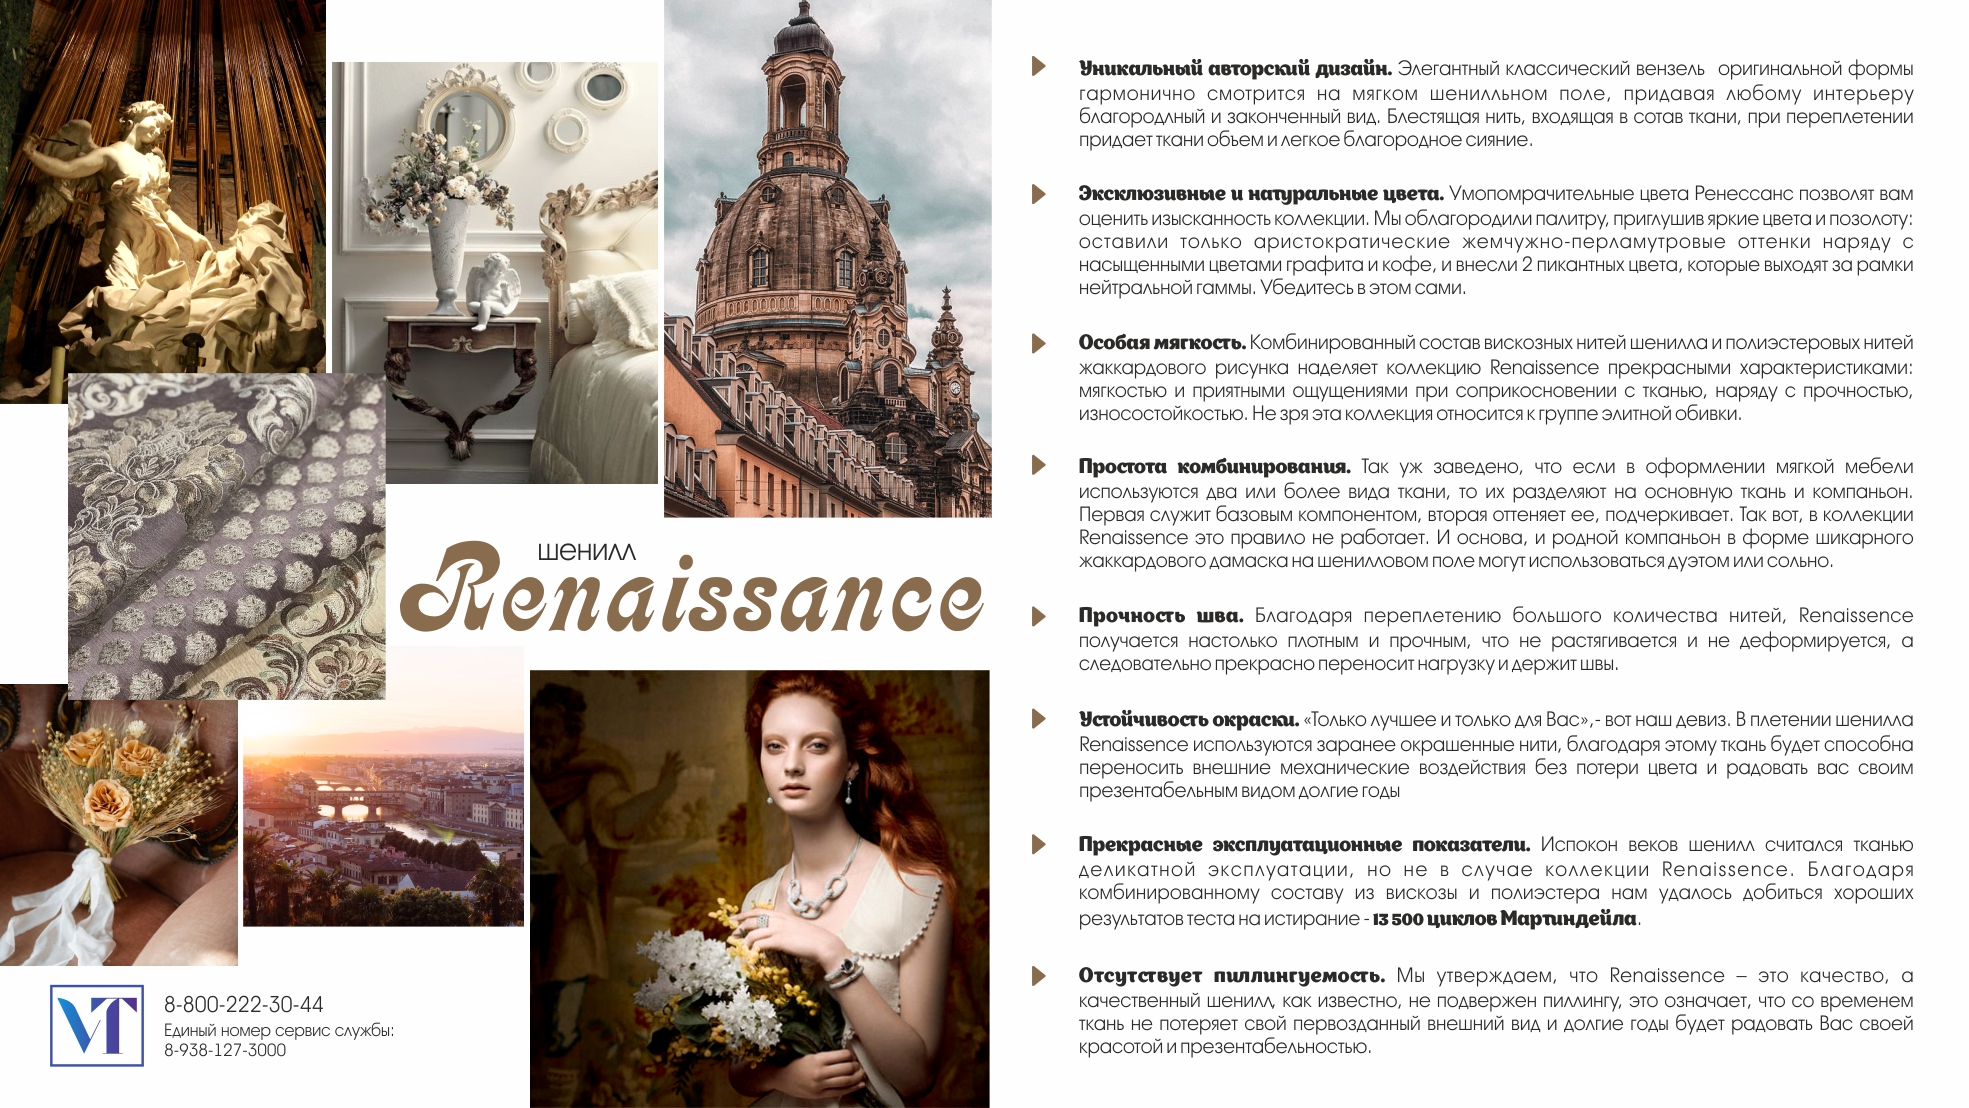 Renaissance advantages